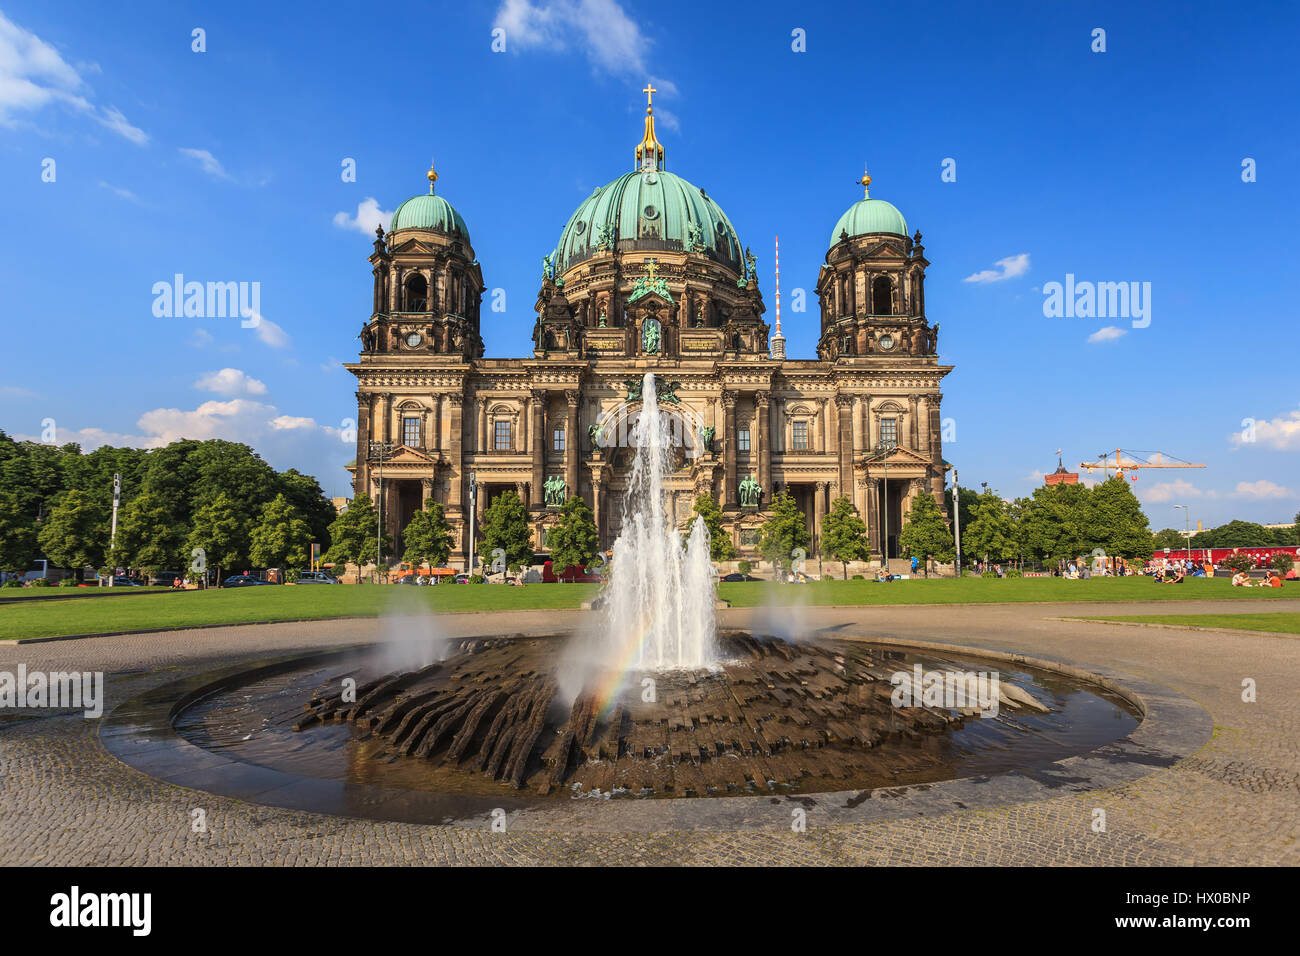 La Cathédrale de Berlin, Berlin, Allemagne Photo Stock